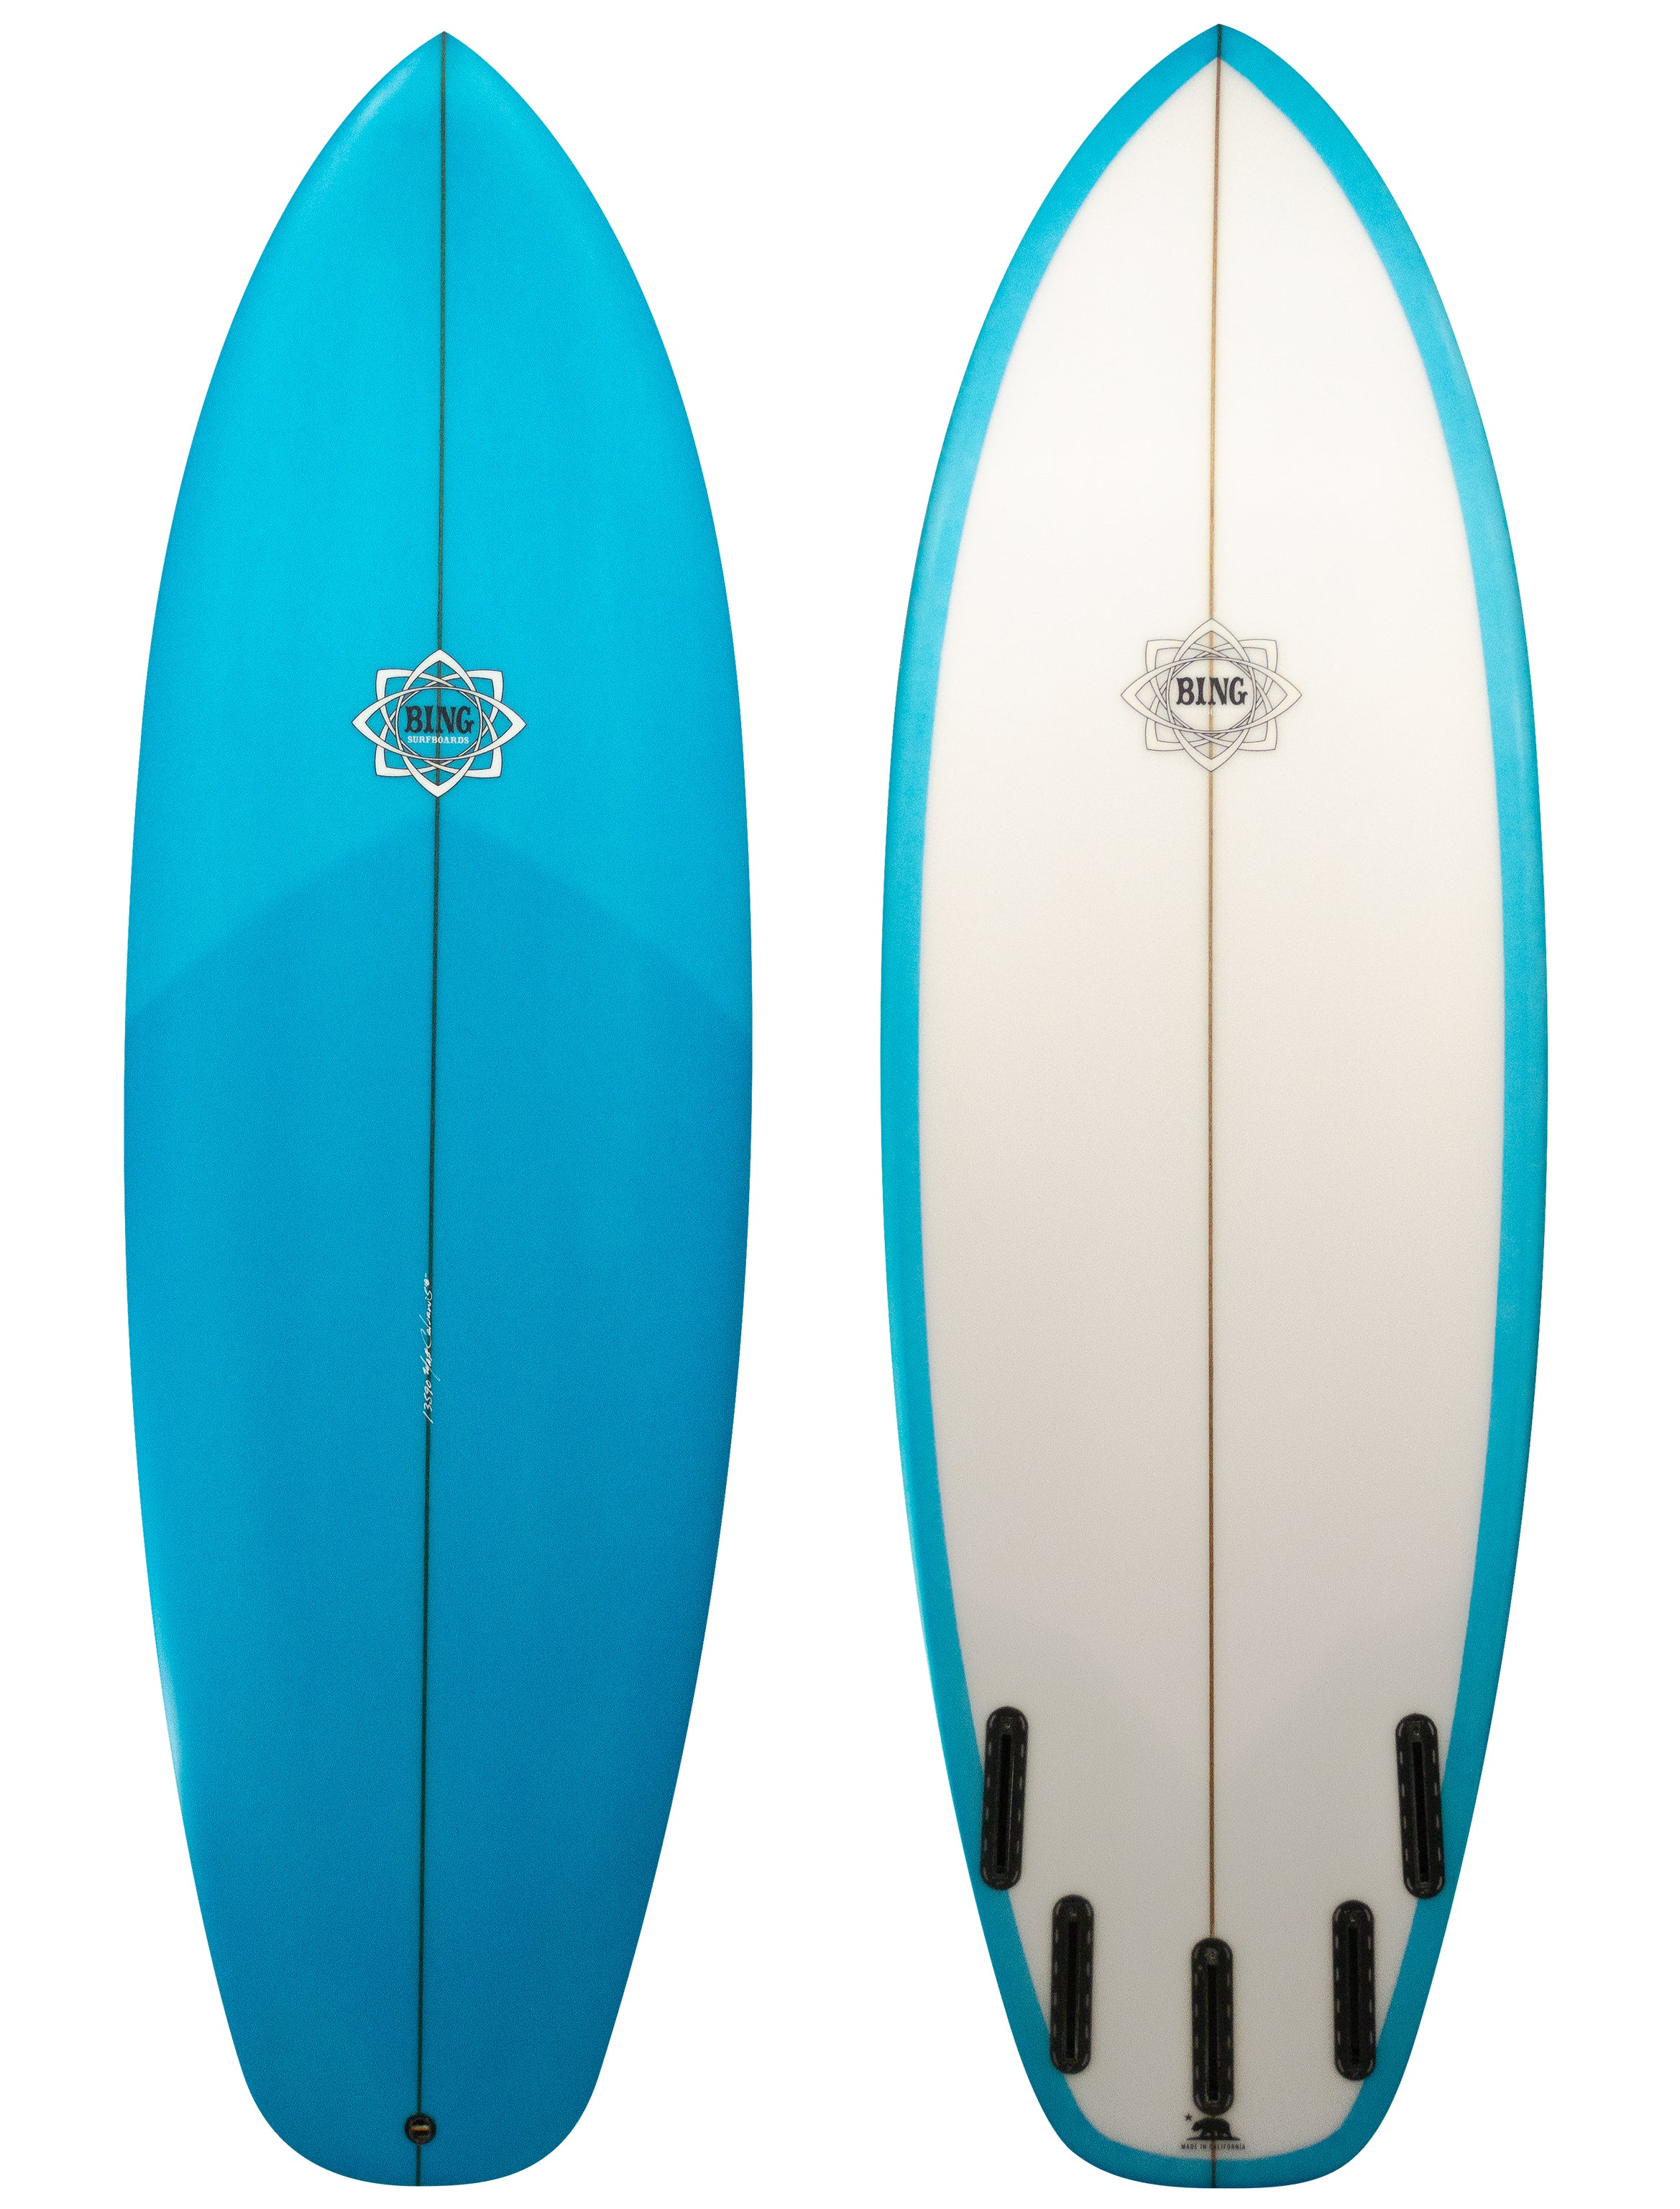 Bing Cypress Shortboard